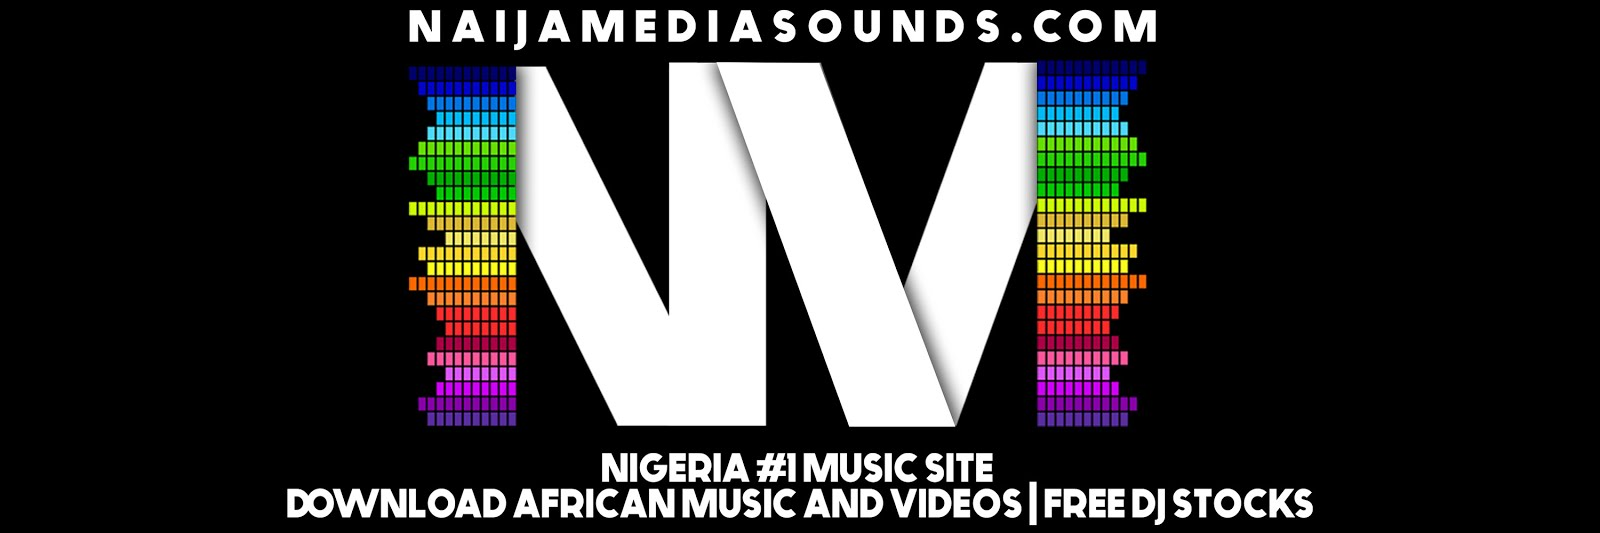 Naijamediasounds | Nigeria #1 Music Site | download african music & videos